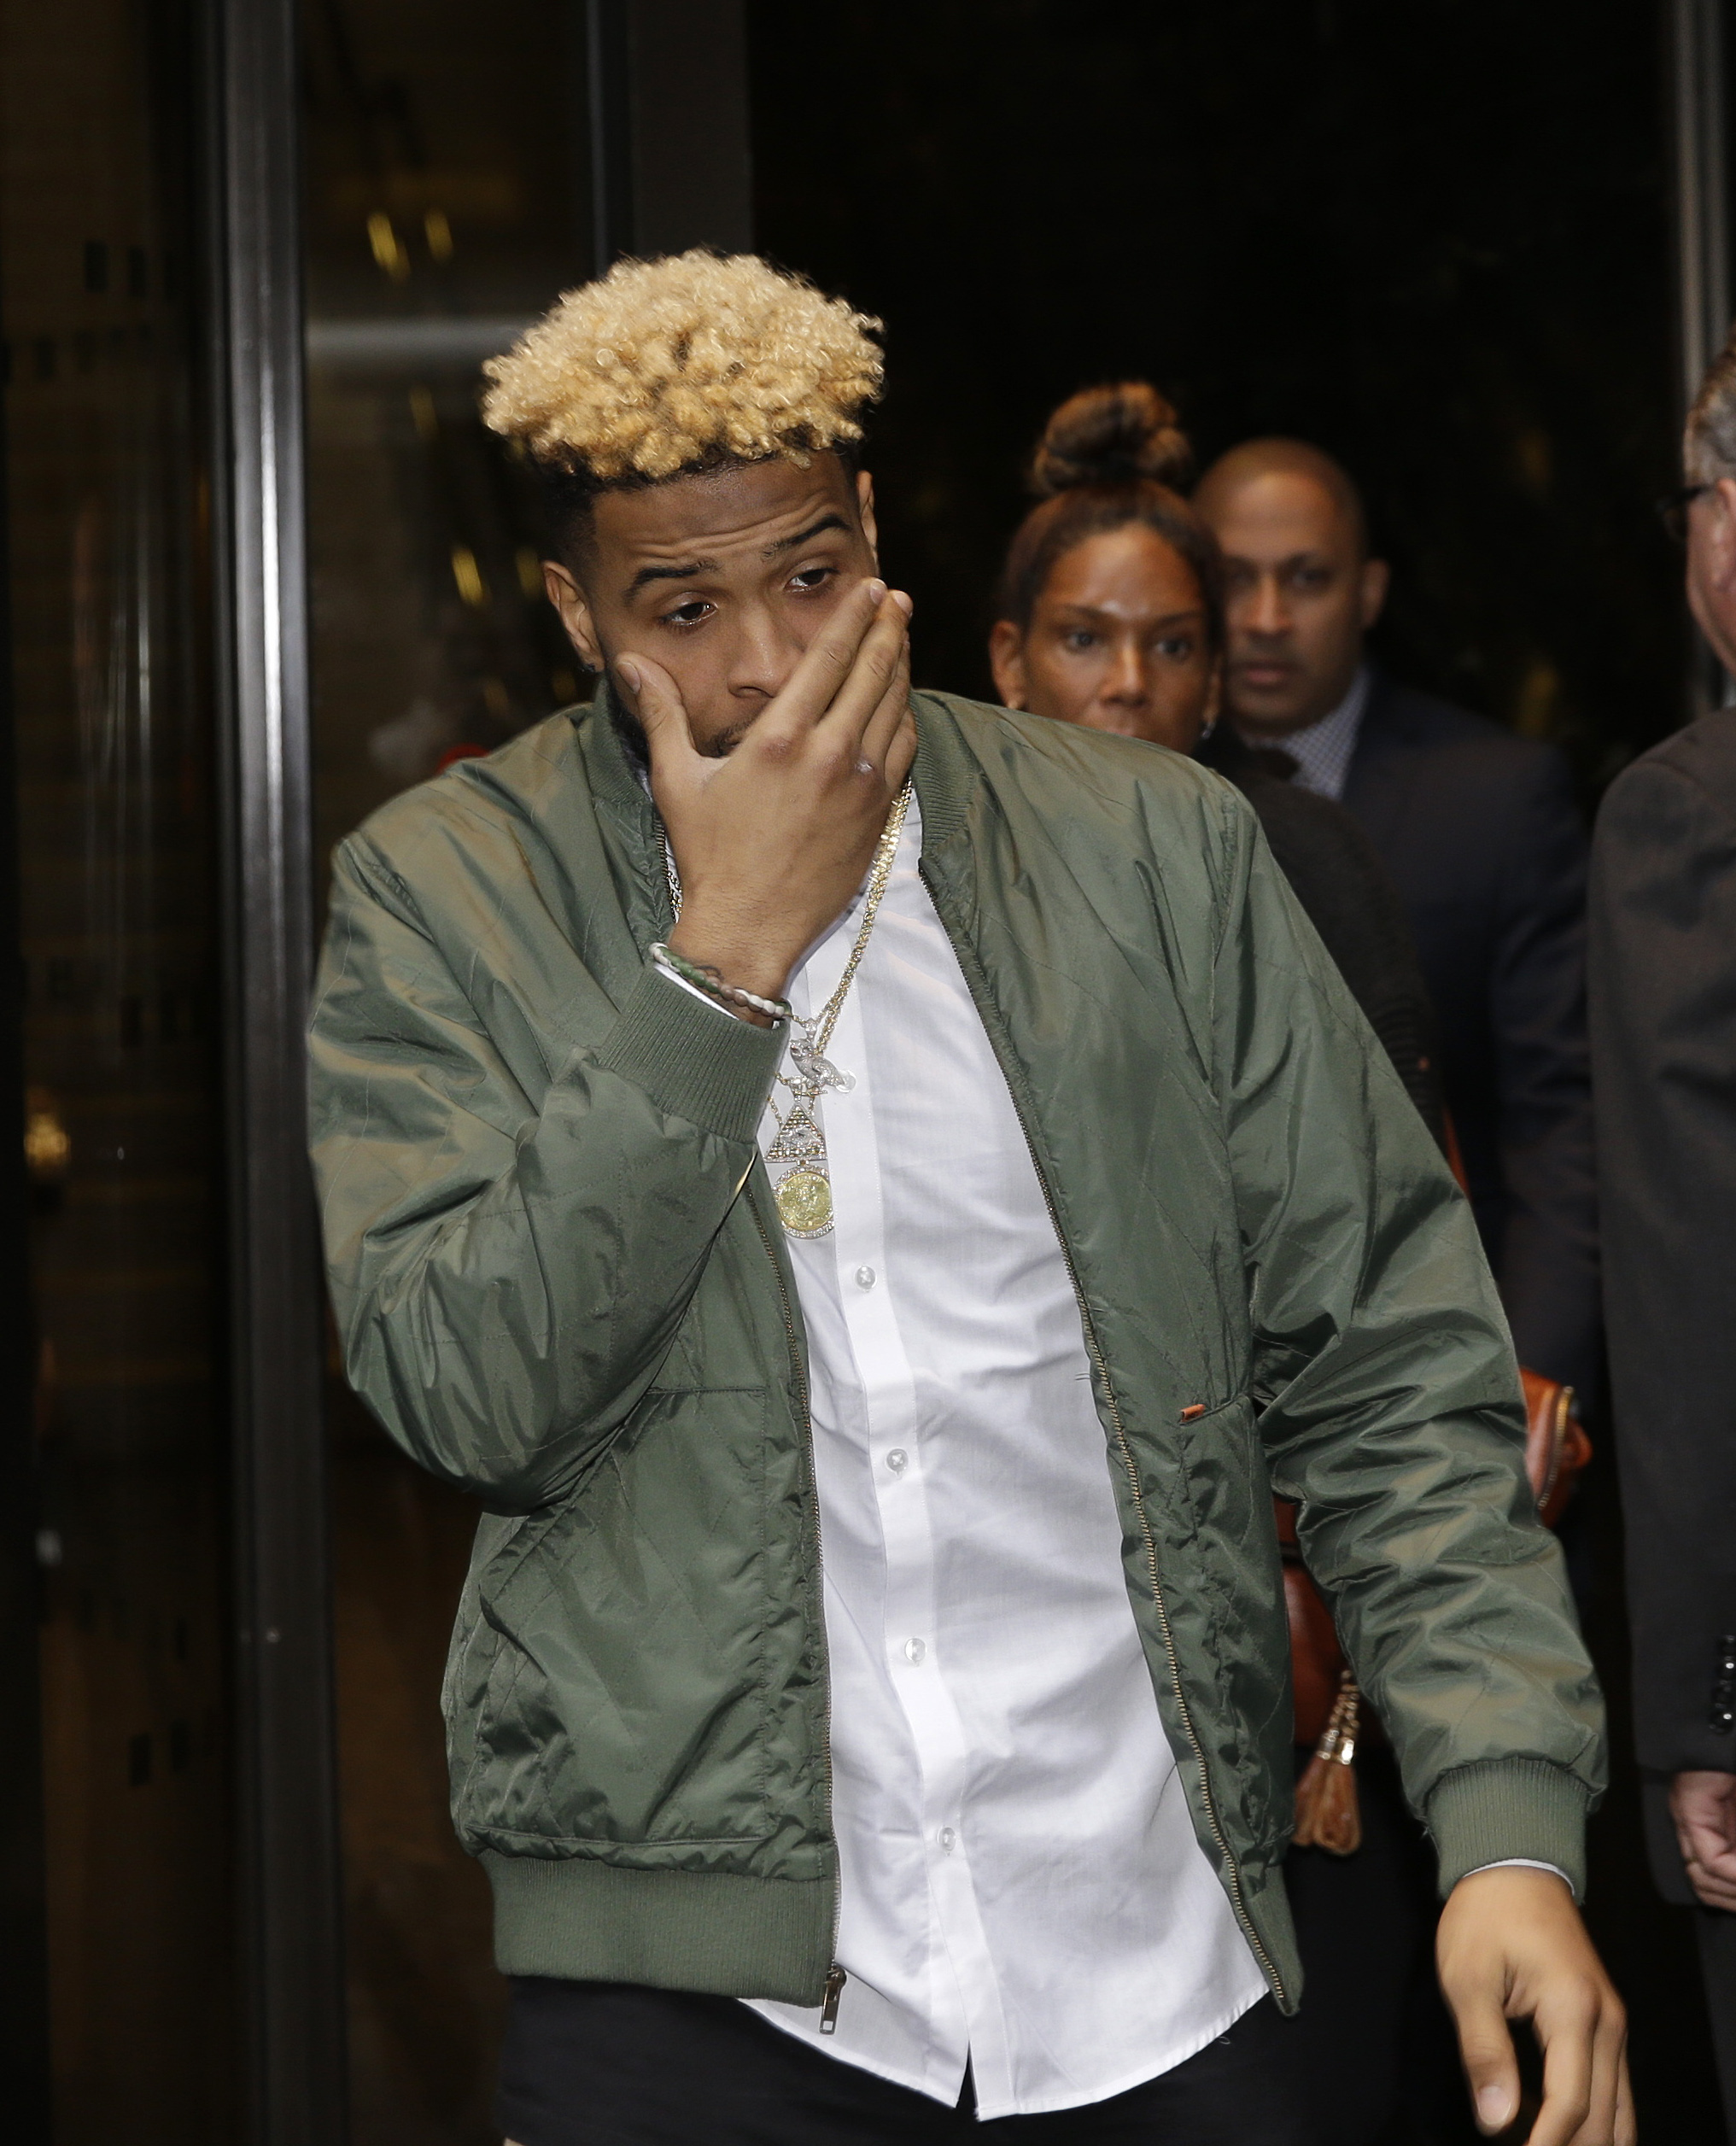 CORRECTS SPELLING TO BECKHAM NOT BECHKAM AND THAT THE NFL HAS NOT OVERTURNED THE ONE-GAME SUSPENSION New York Giants' Odell Beckham Jr. leaves NFL headquarters in New York, Wednesday, Dec. 23, 2015. The NFL is expected to rule on the appeal of Beckham's o